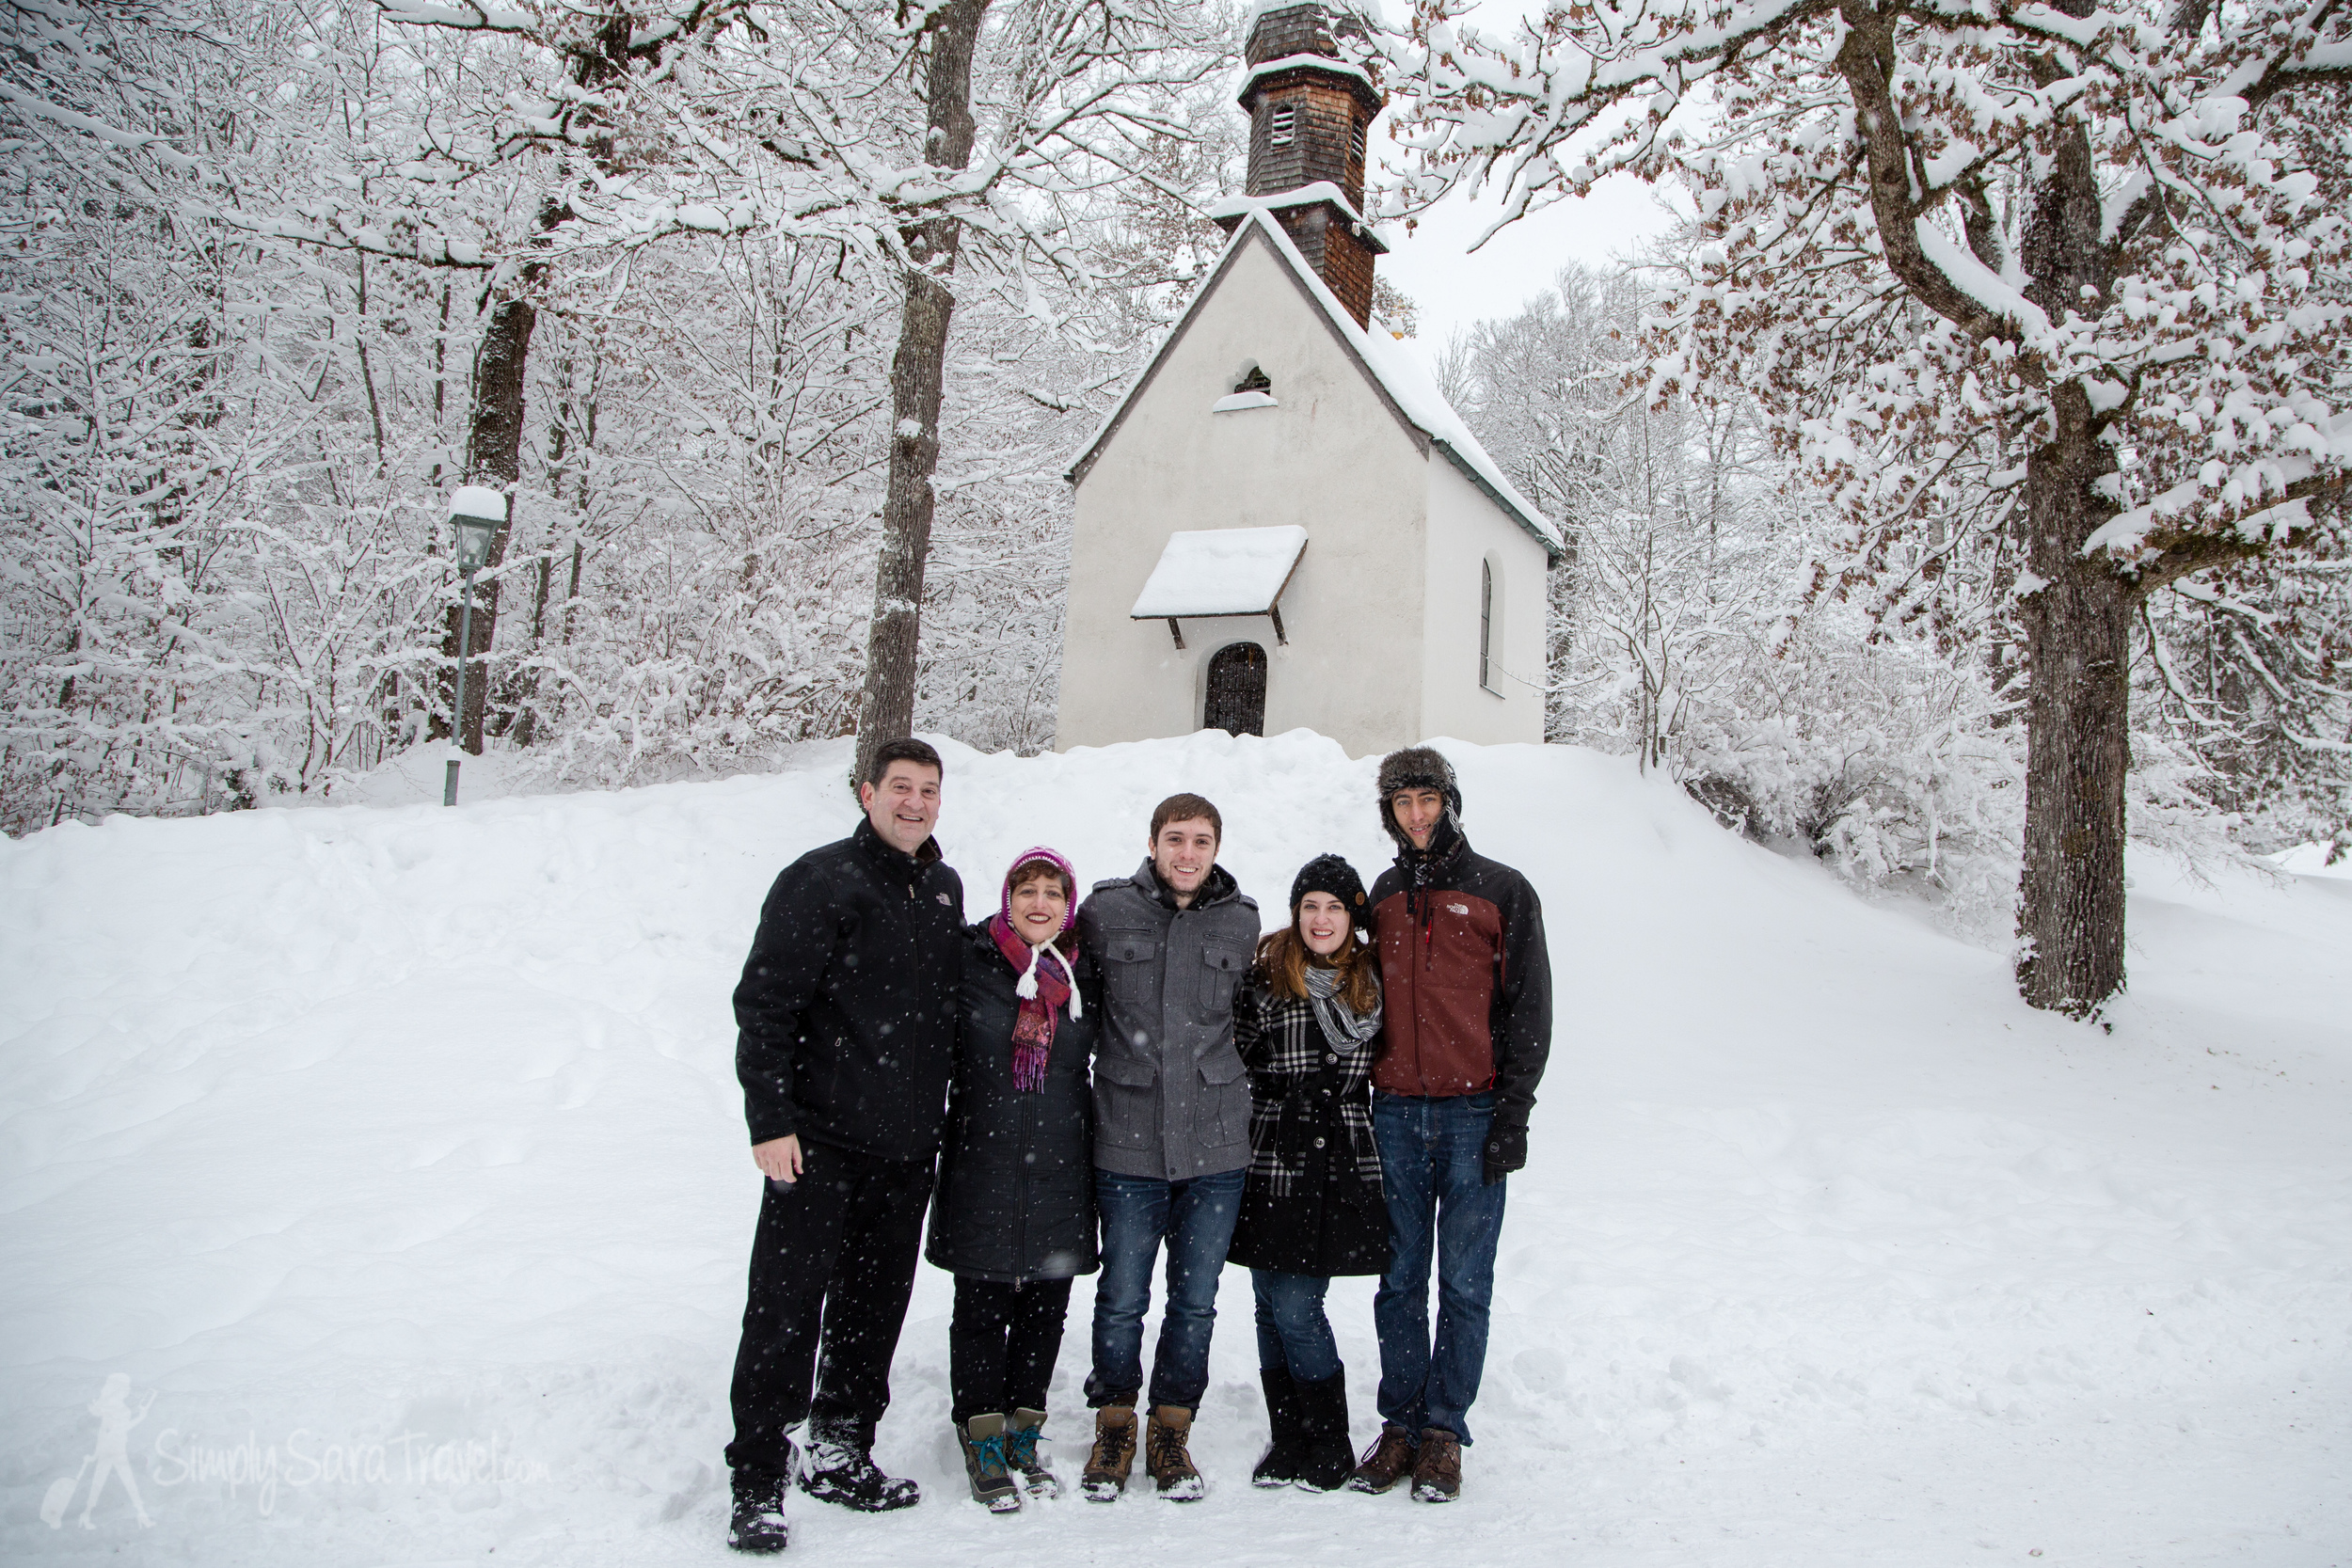 After two Christmases without my family, it was so fun to be reunited for the holidays together! Seefeld was a great home base for our festivities, and our rental car allowed us to see more of the area, like the Linderhof Palace in Germany (where we are pictured on the grounds of).